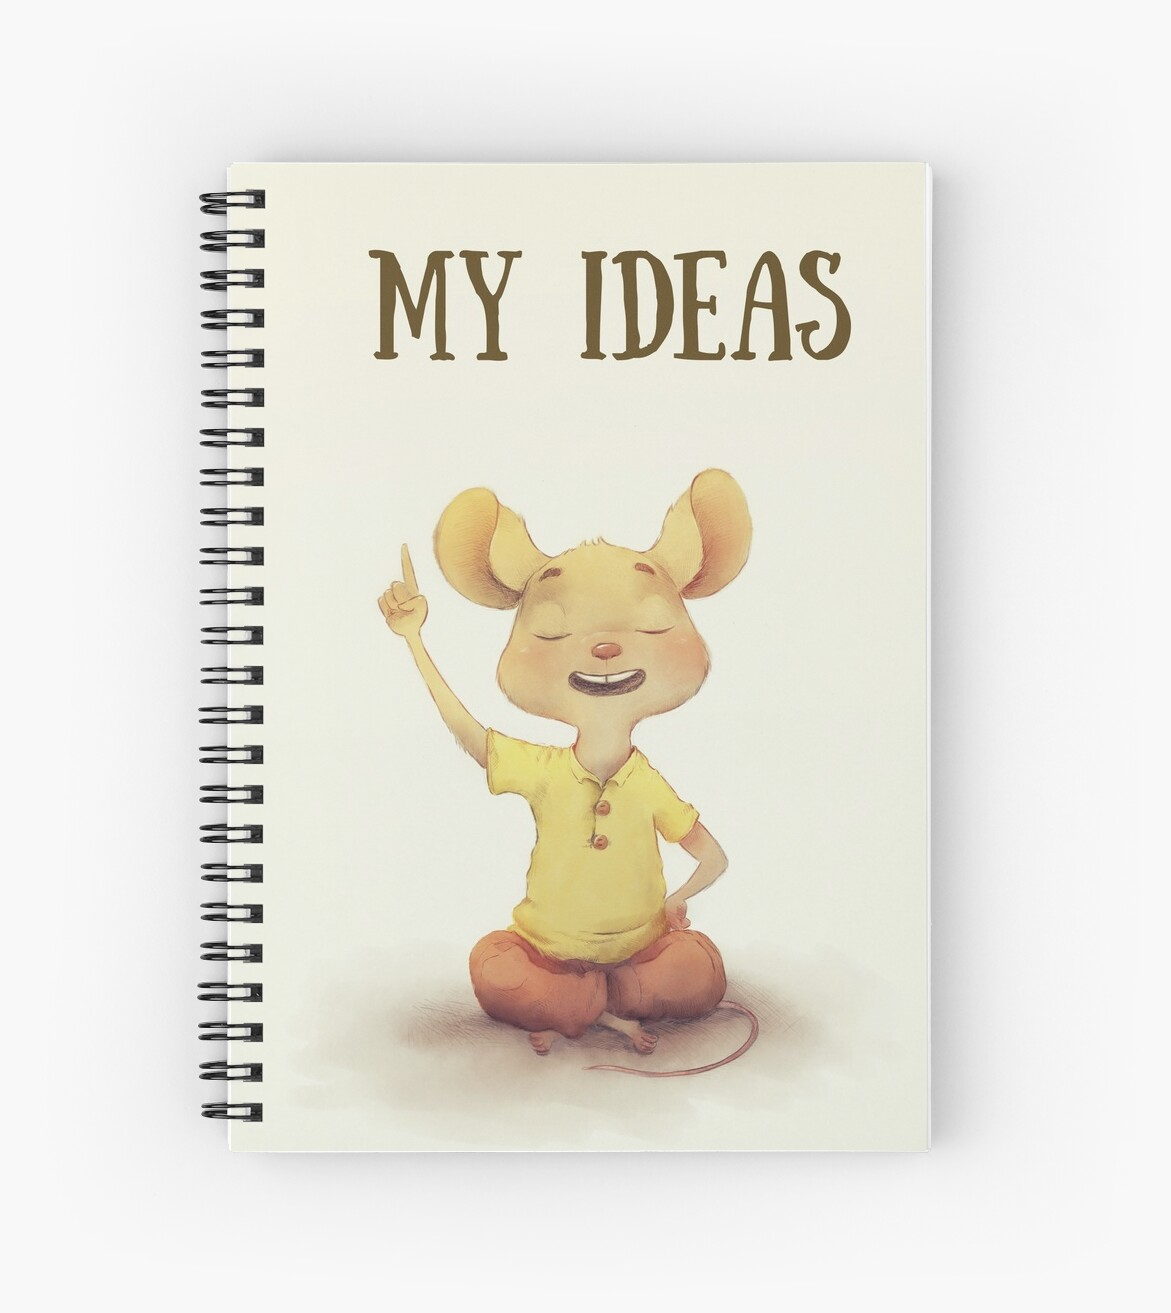 My Ideas Journal Spiral Notebook by Paul Hamilton